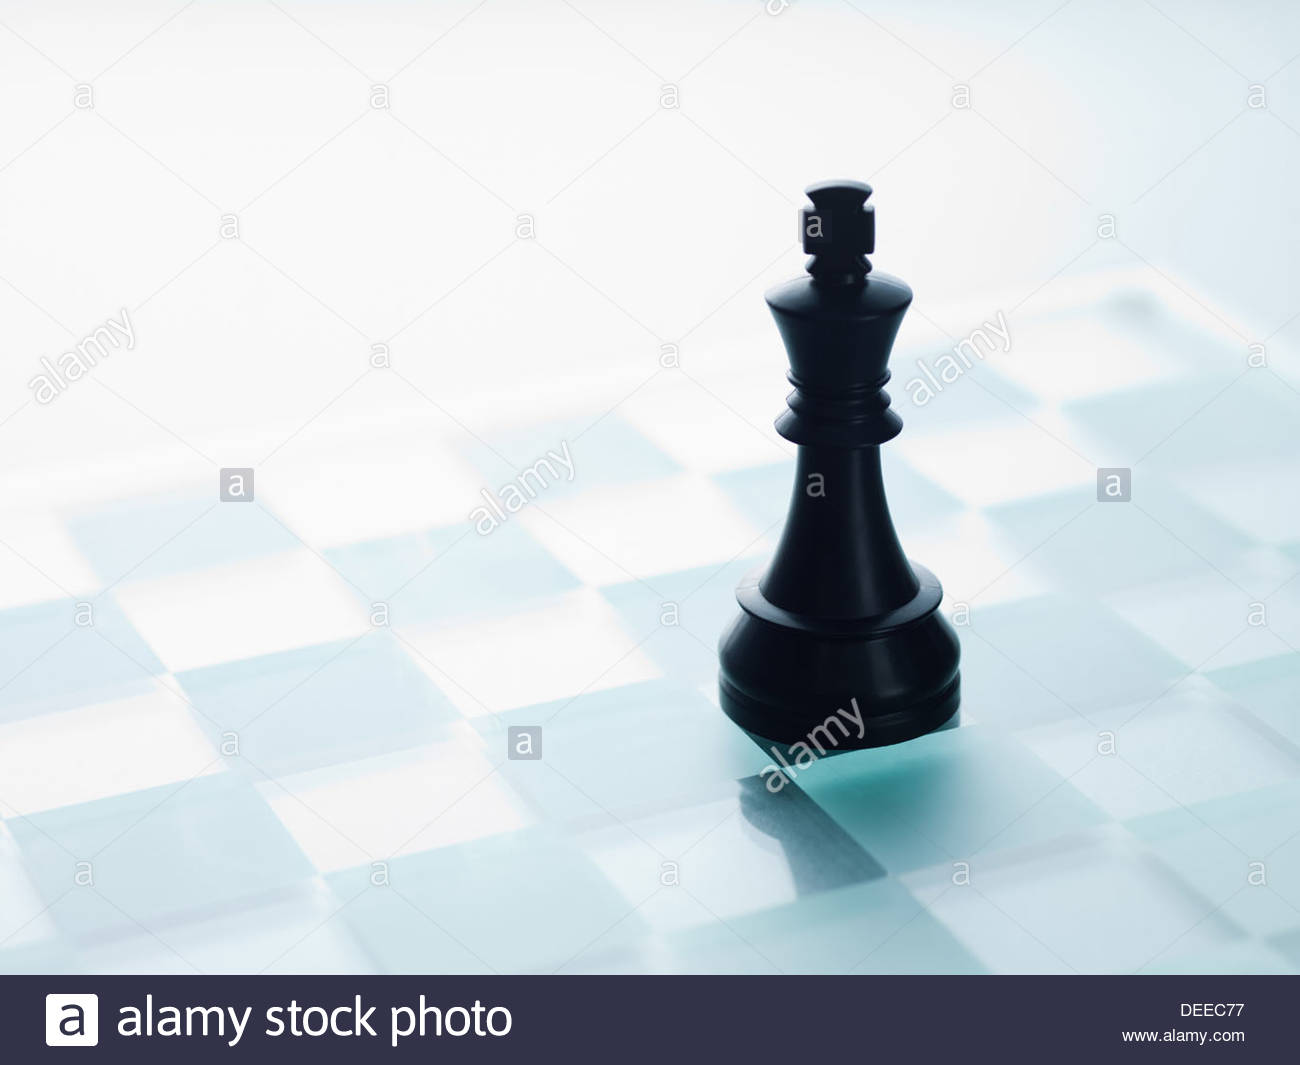 Black chess piece - Stock Image